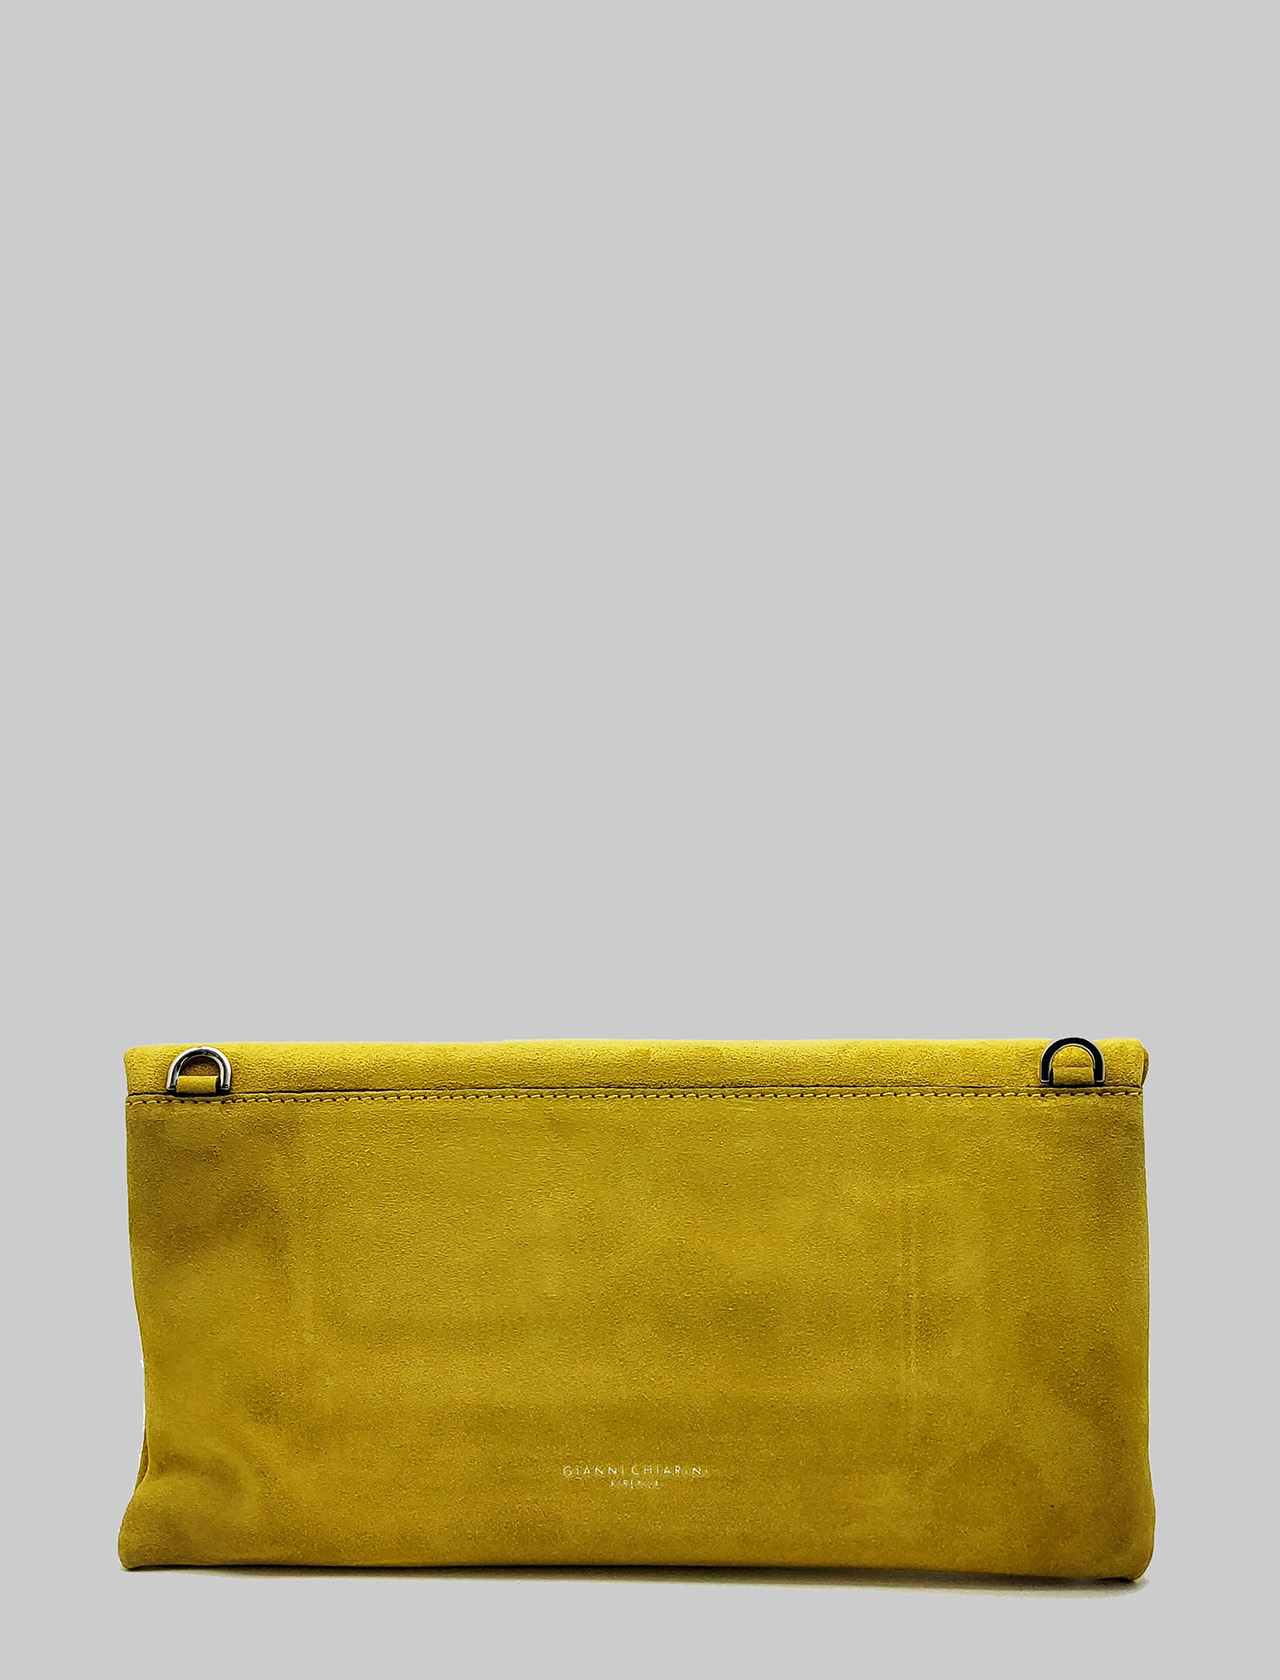 Cherry Women's Clutch Bag In Mustard Suede With Removable Tone Shoulder Strap Gianni Chiarini | Bags and backpacks | BS73755348